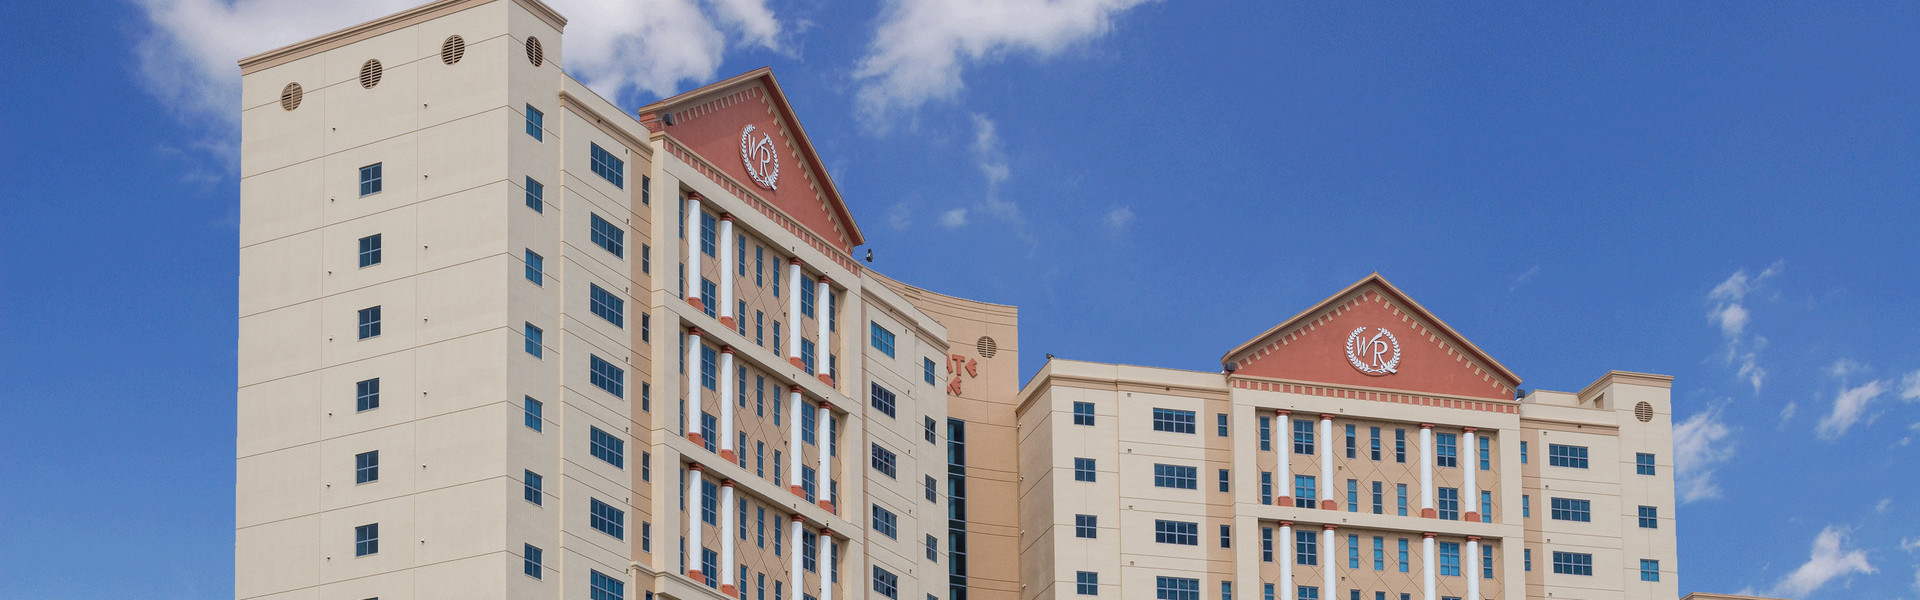 Hotel Specials & Hotel Discounts | Westgate Palace Orlando | Hotel Discounts Near International Drive, Orlando, FL 32819